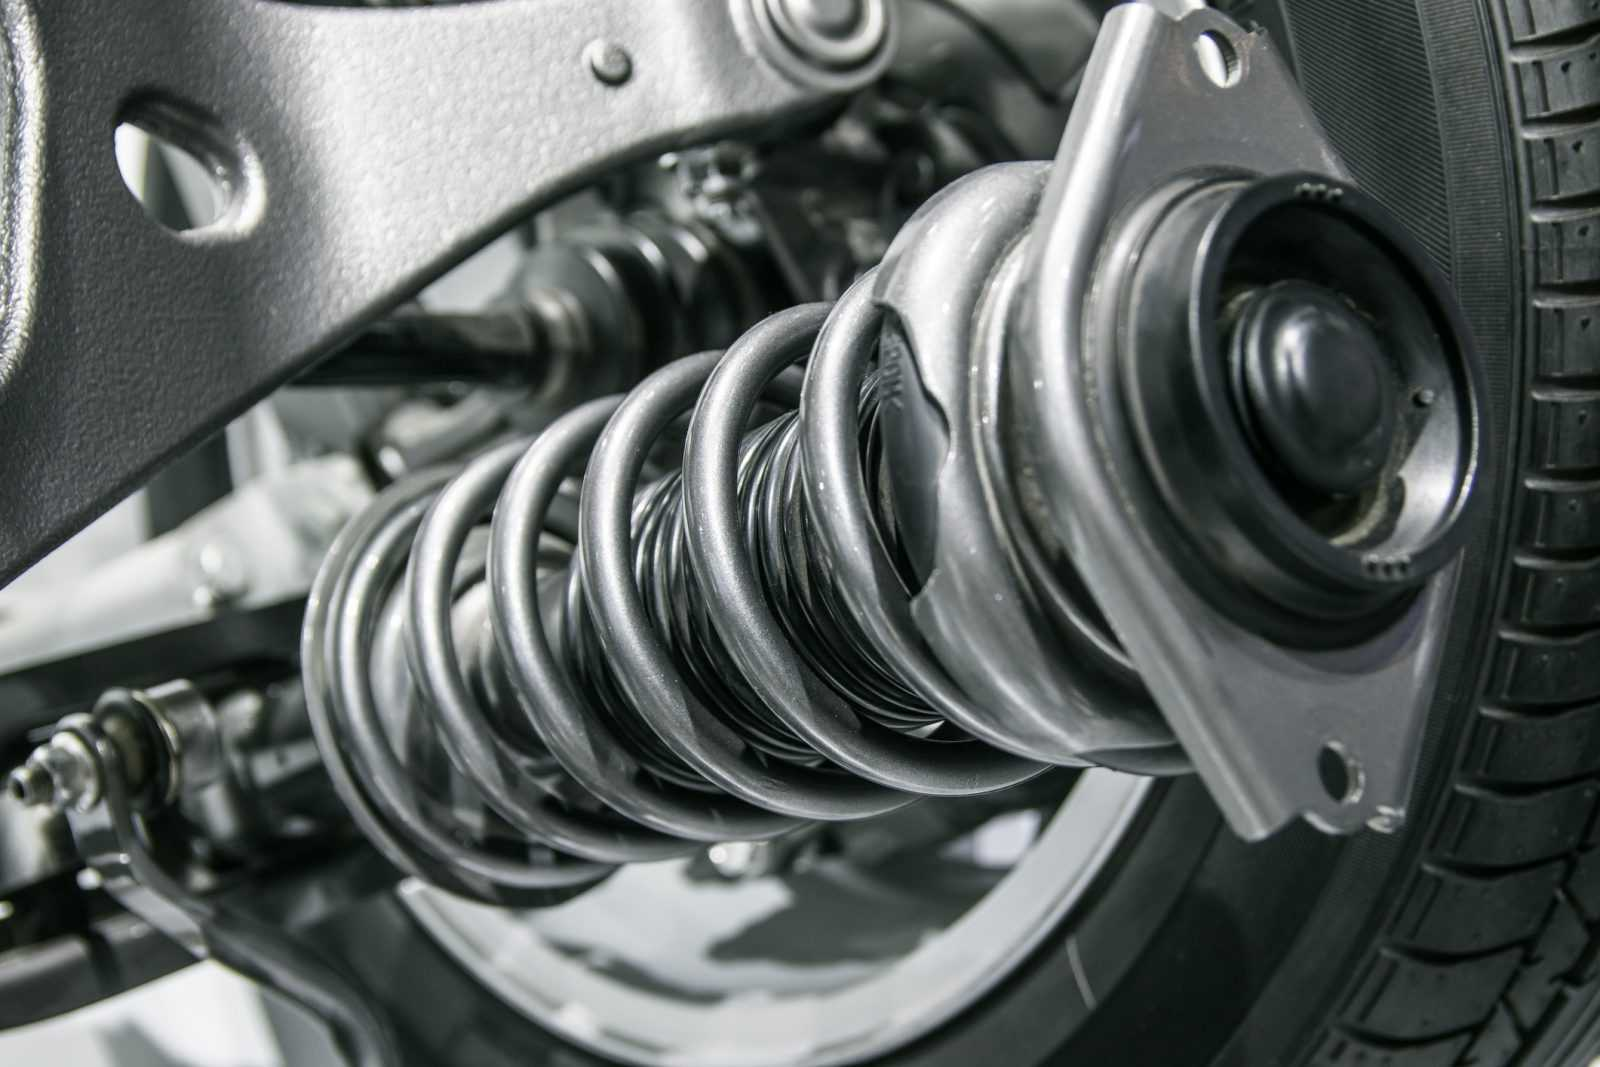 A vehicle without struts increases the chances of tires falling flat on the ground